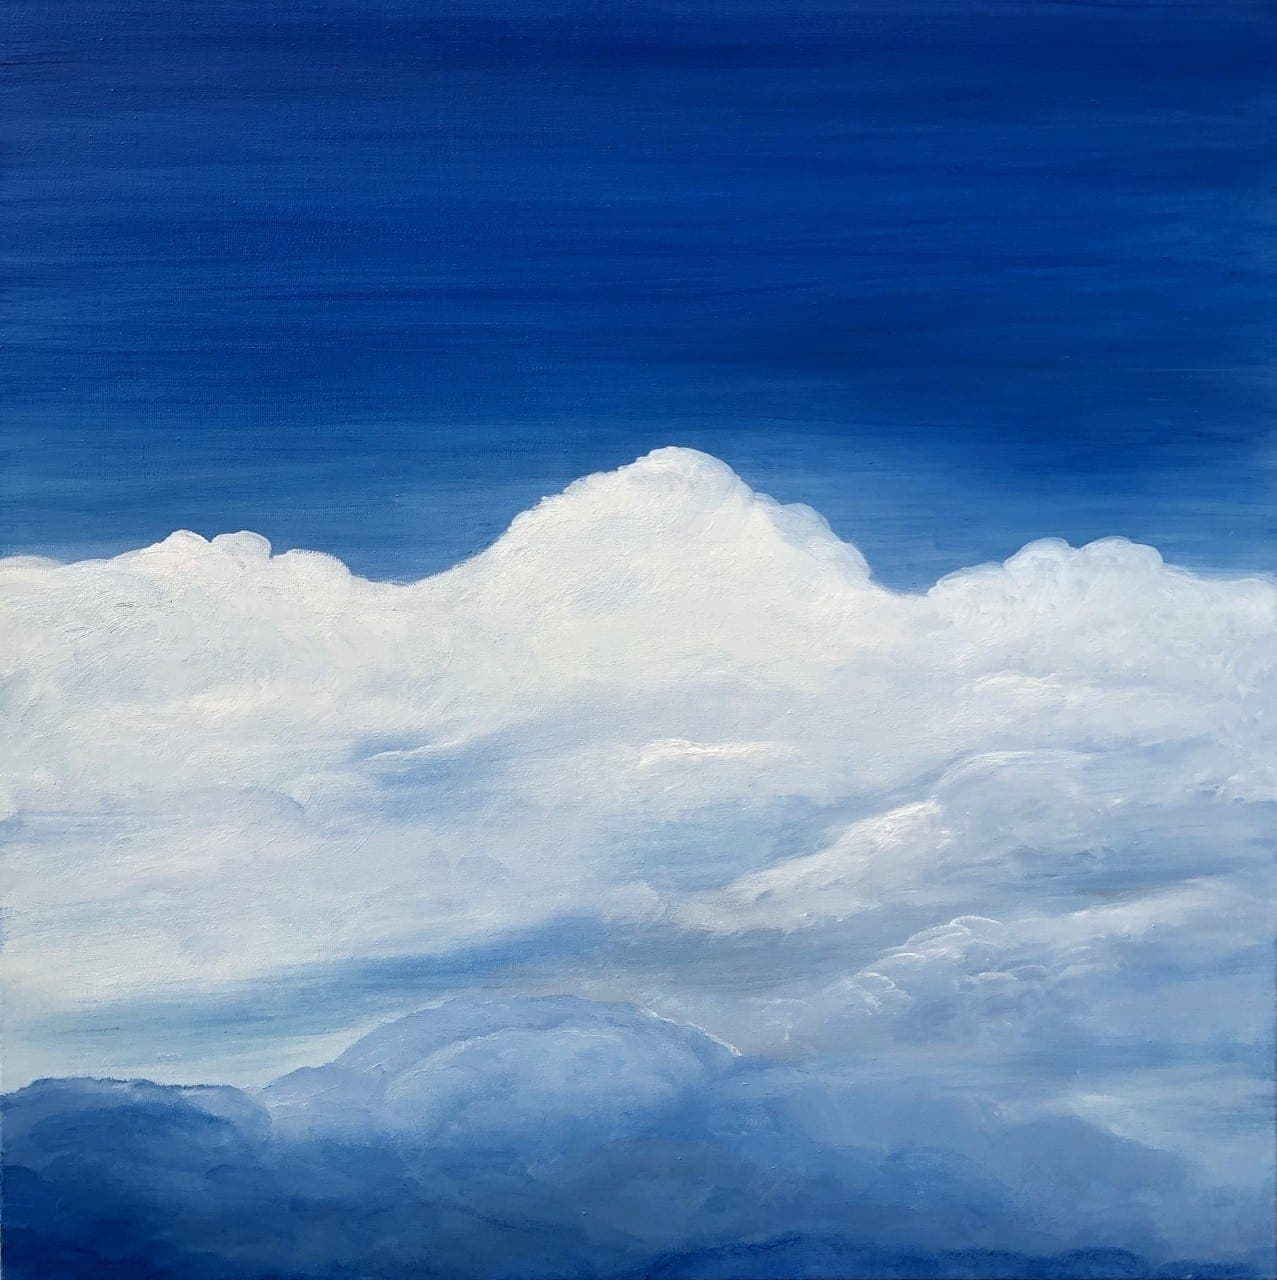 Atomosphere II original oil on canvas painting measuring 60 x 60 cm or 23.5 x 23.5 inches £250. Blue sky with white clouds across the horizon.